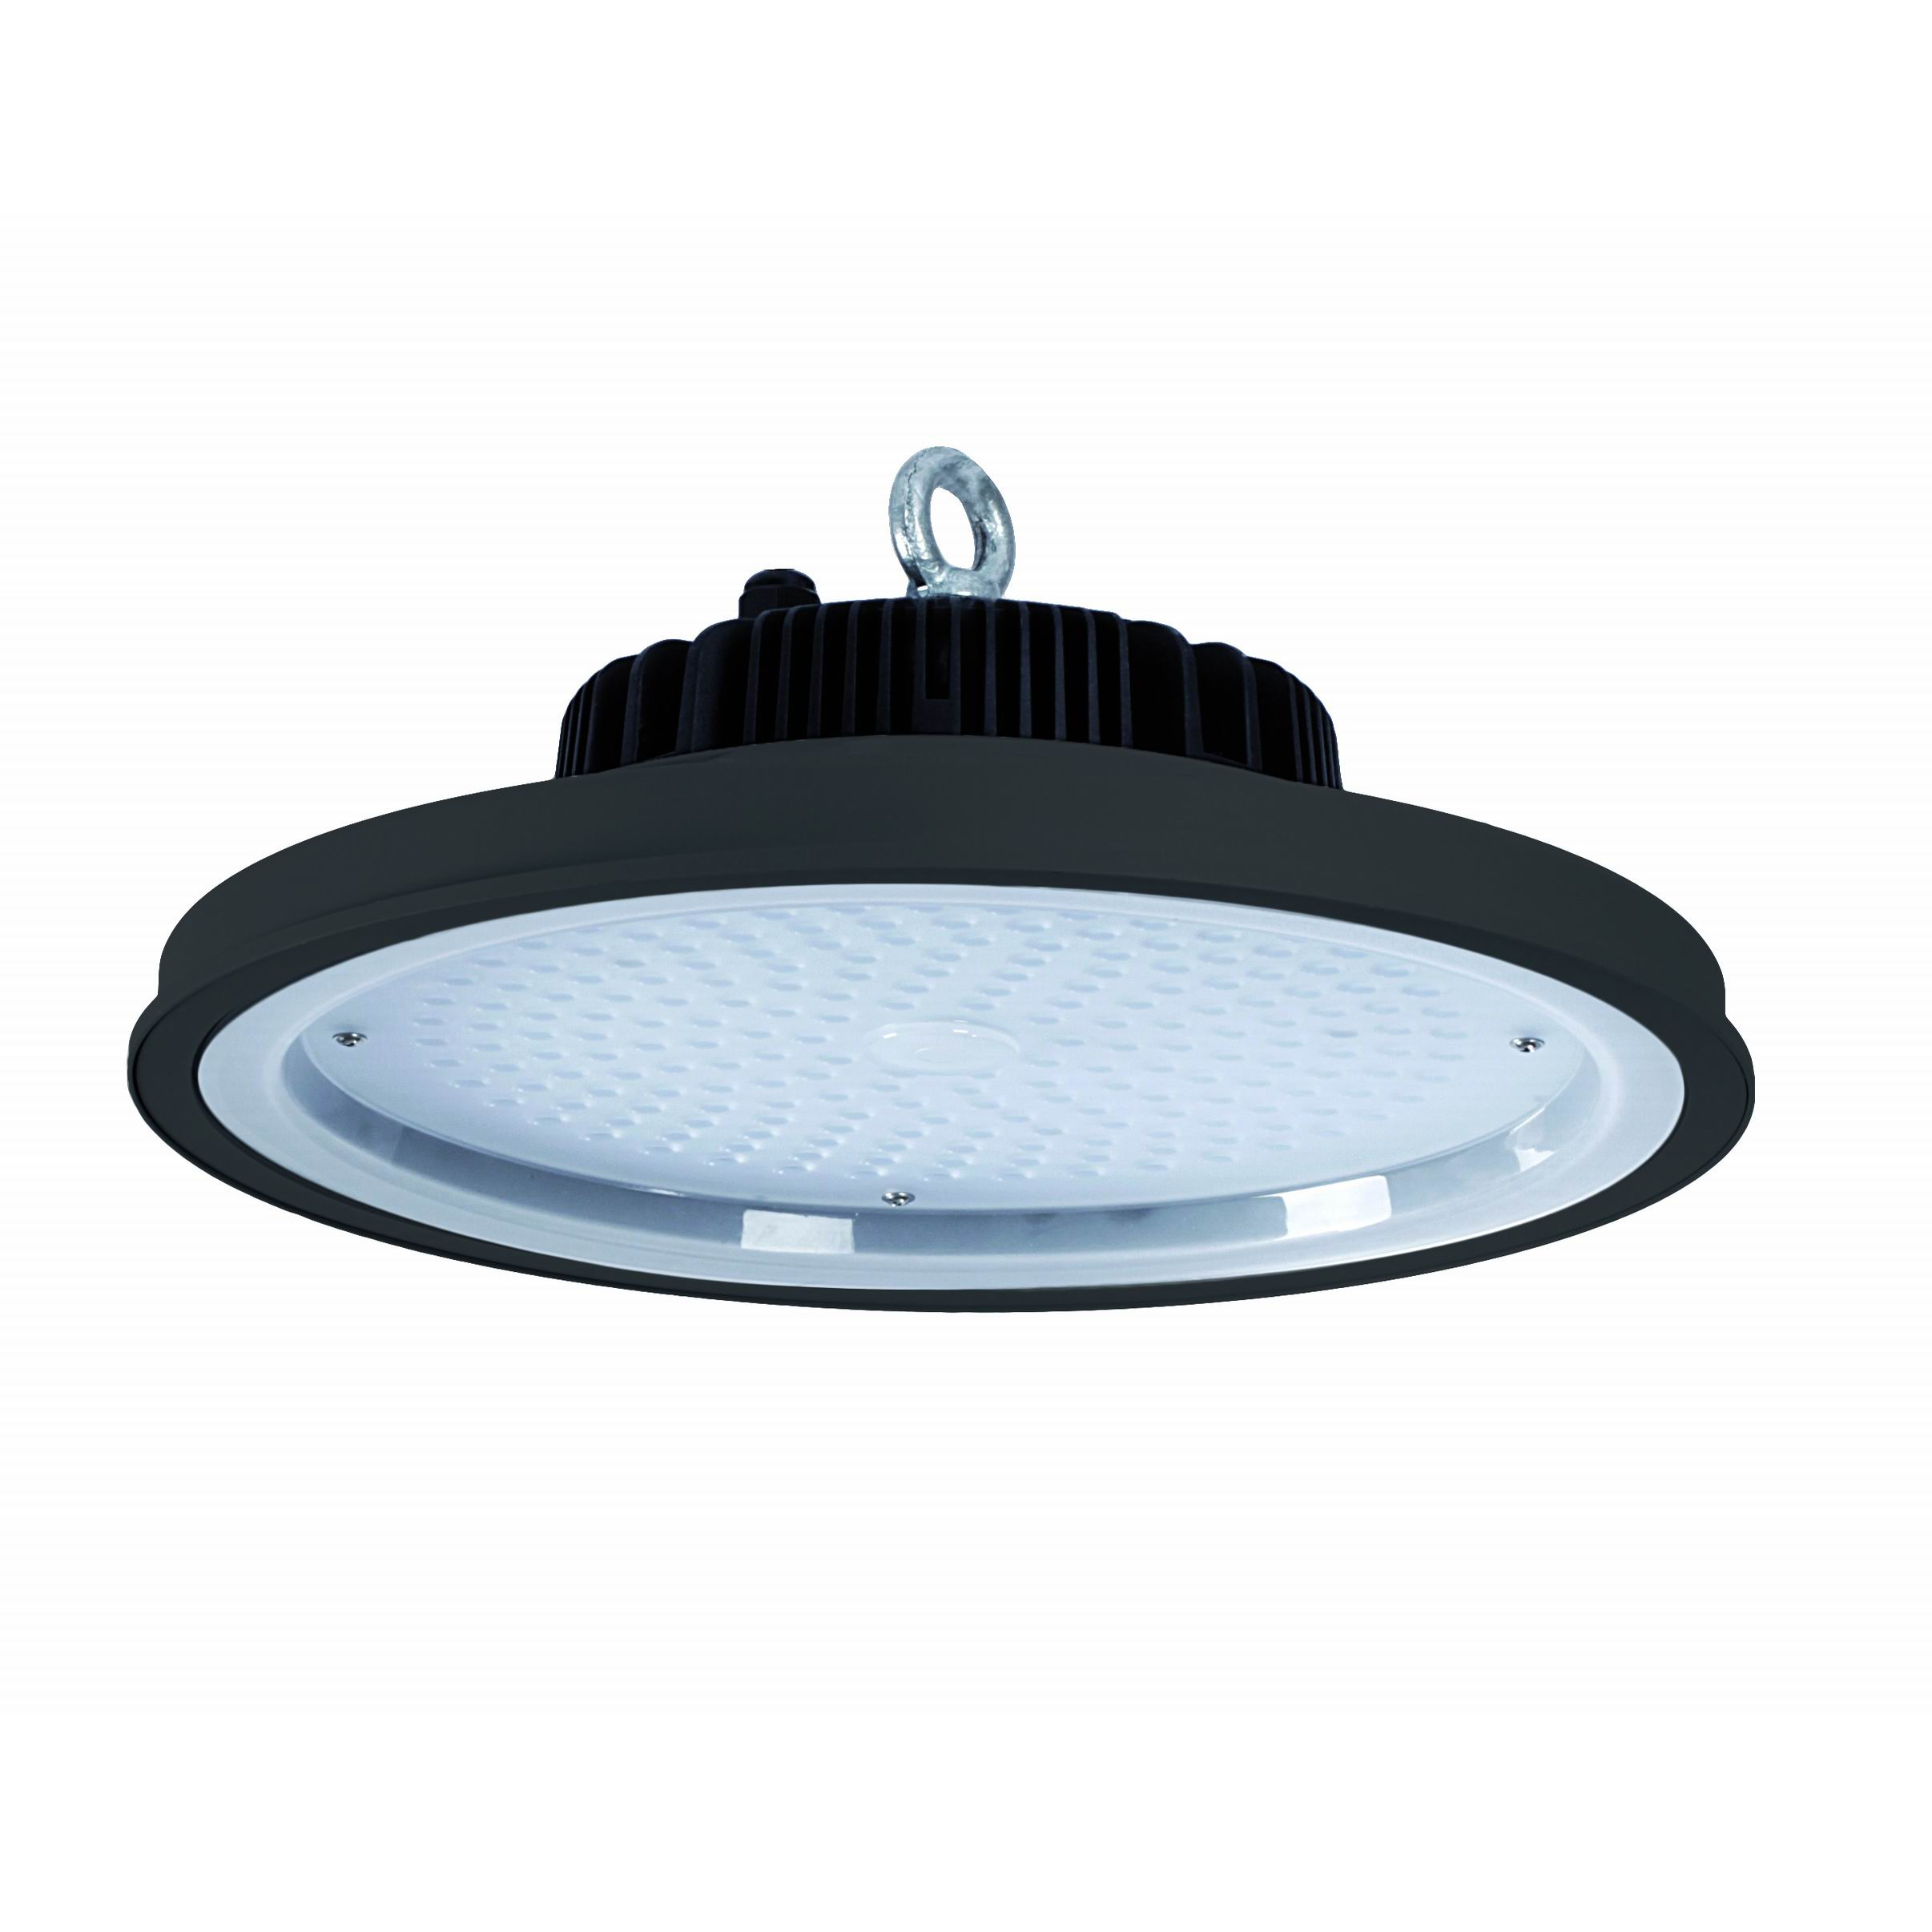 Proiector LED industrial suspendat 120W LED CHIP Philips